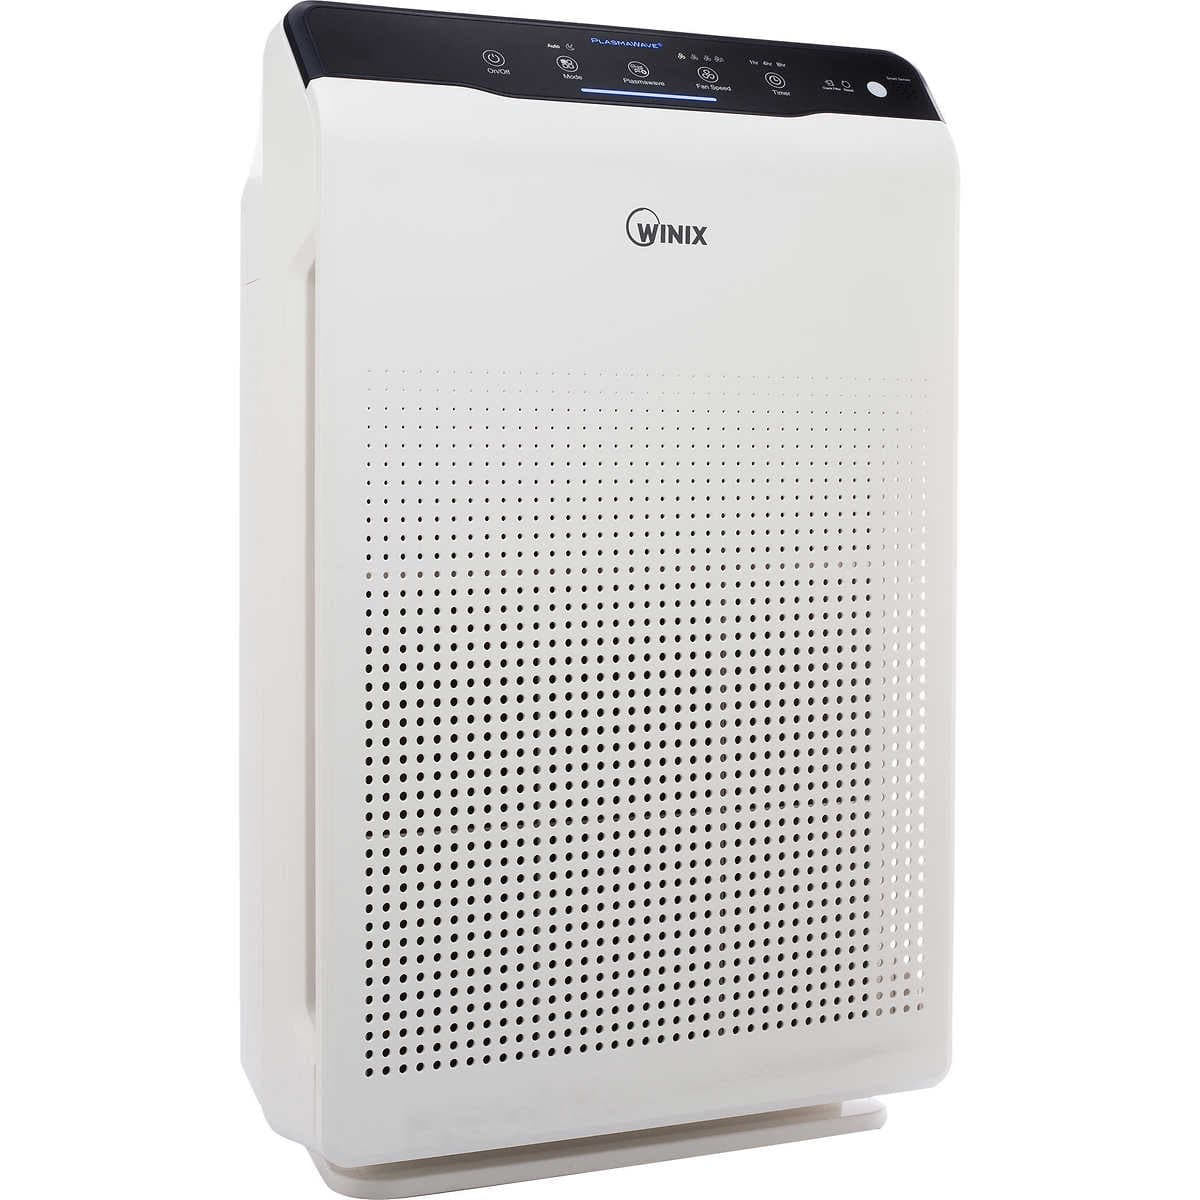 costco winix c535 air cleaner purifier with plasmawave technology 120 899 shipping or buy